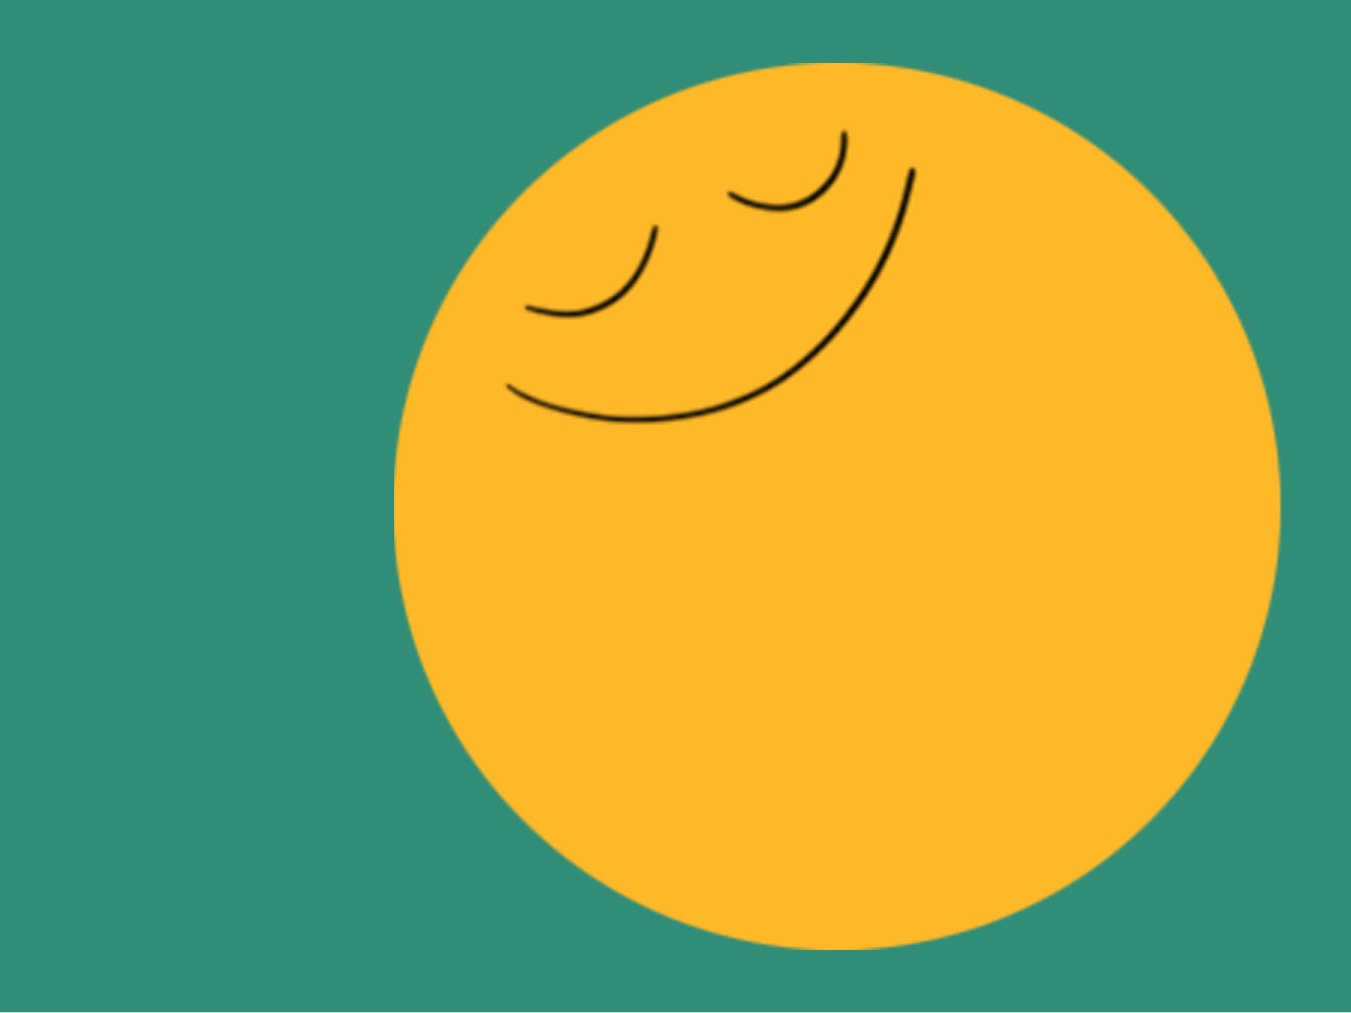 illustration of yellow dot with smiling face